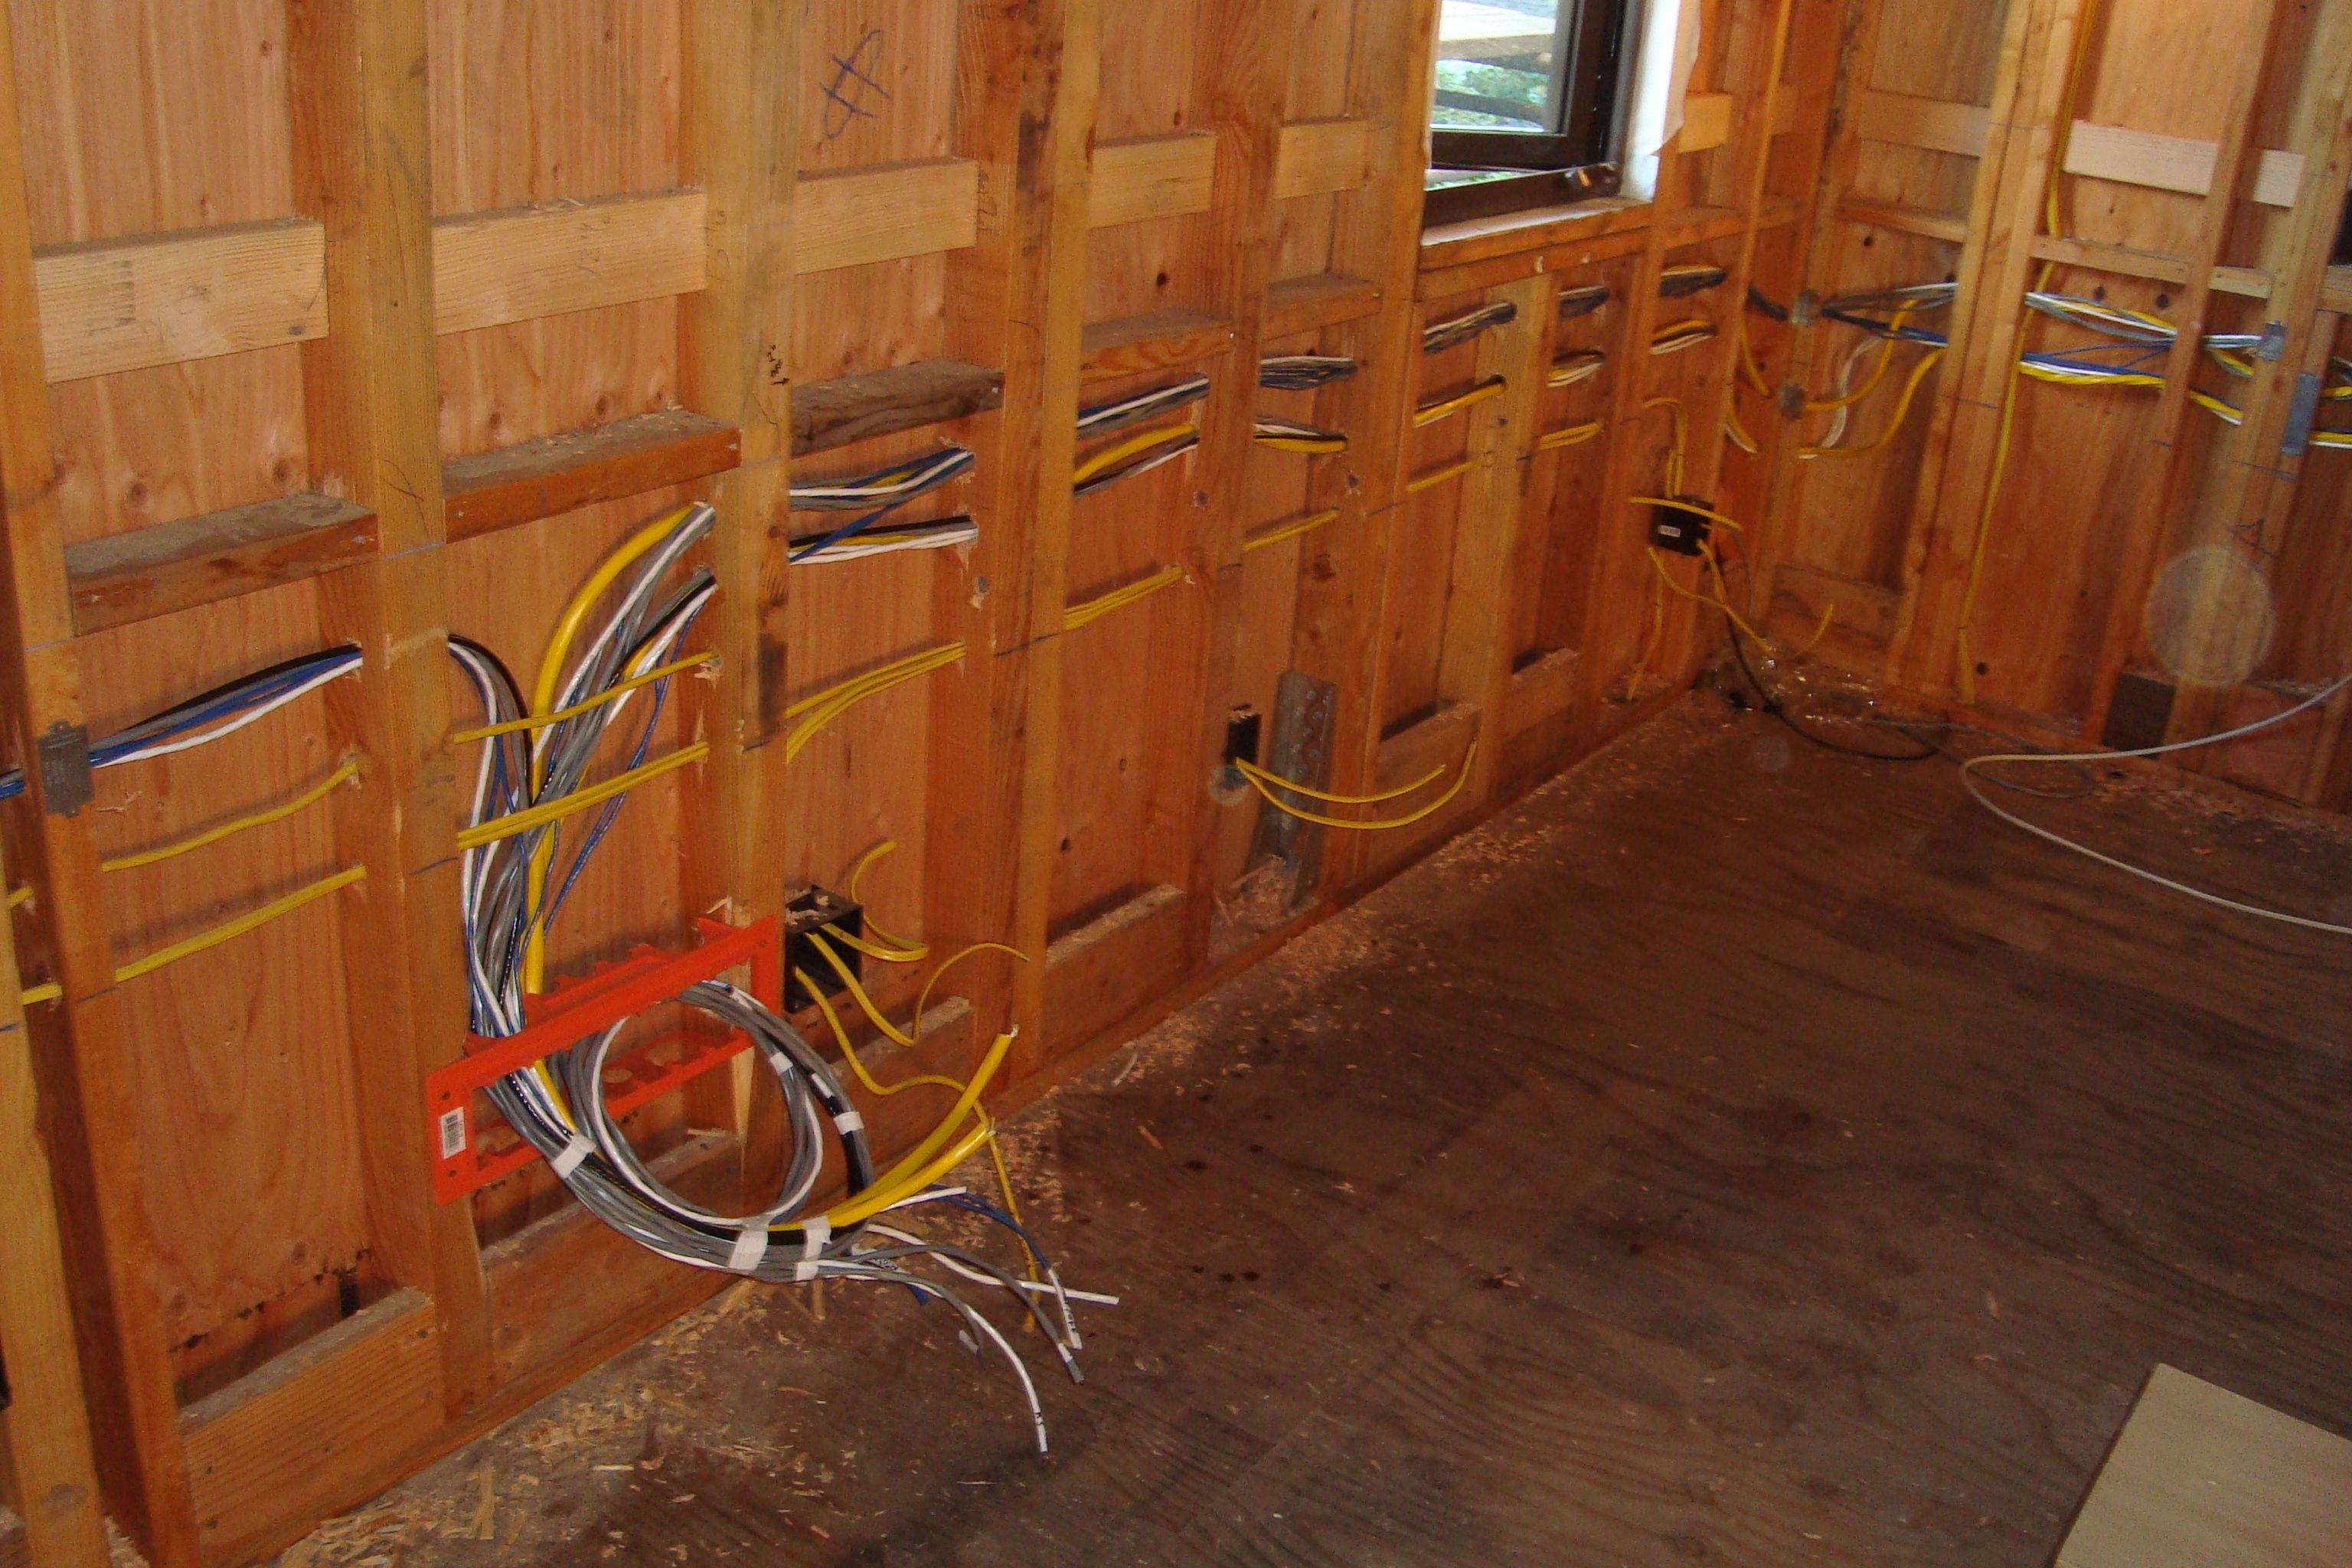 In House Wiring - Merzie.net